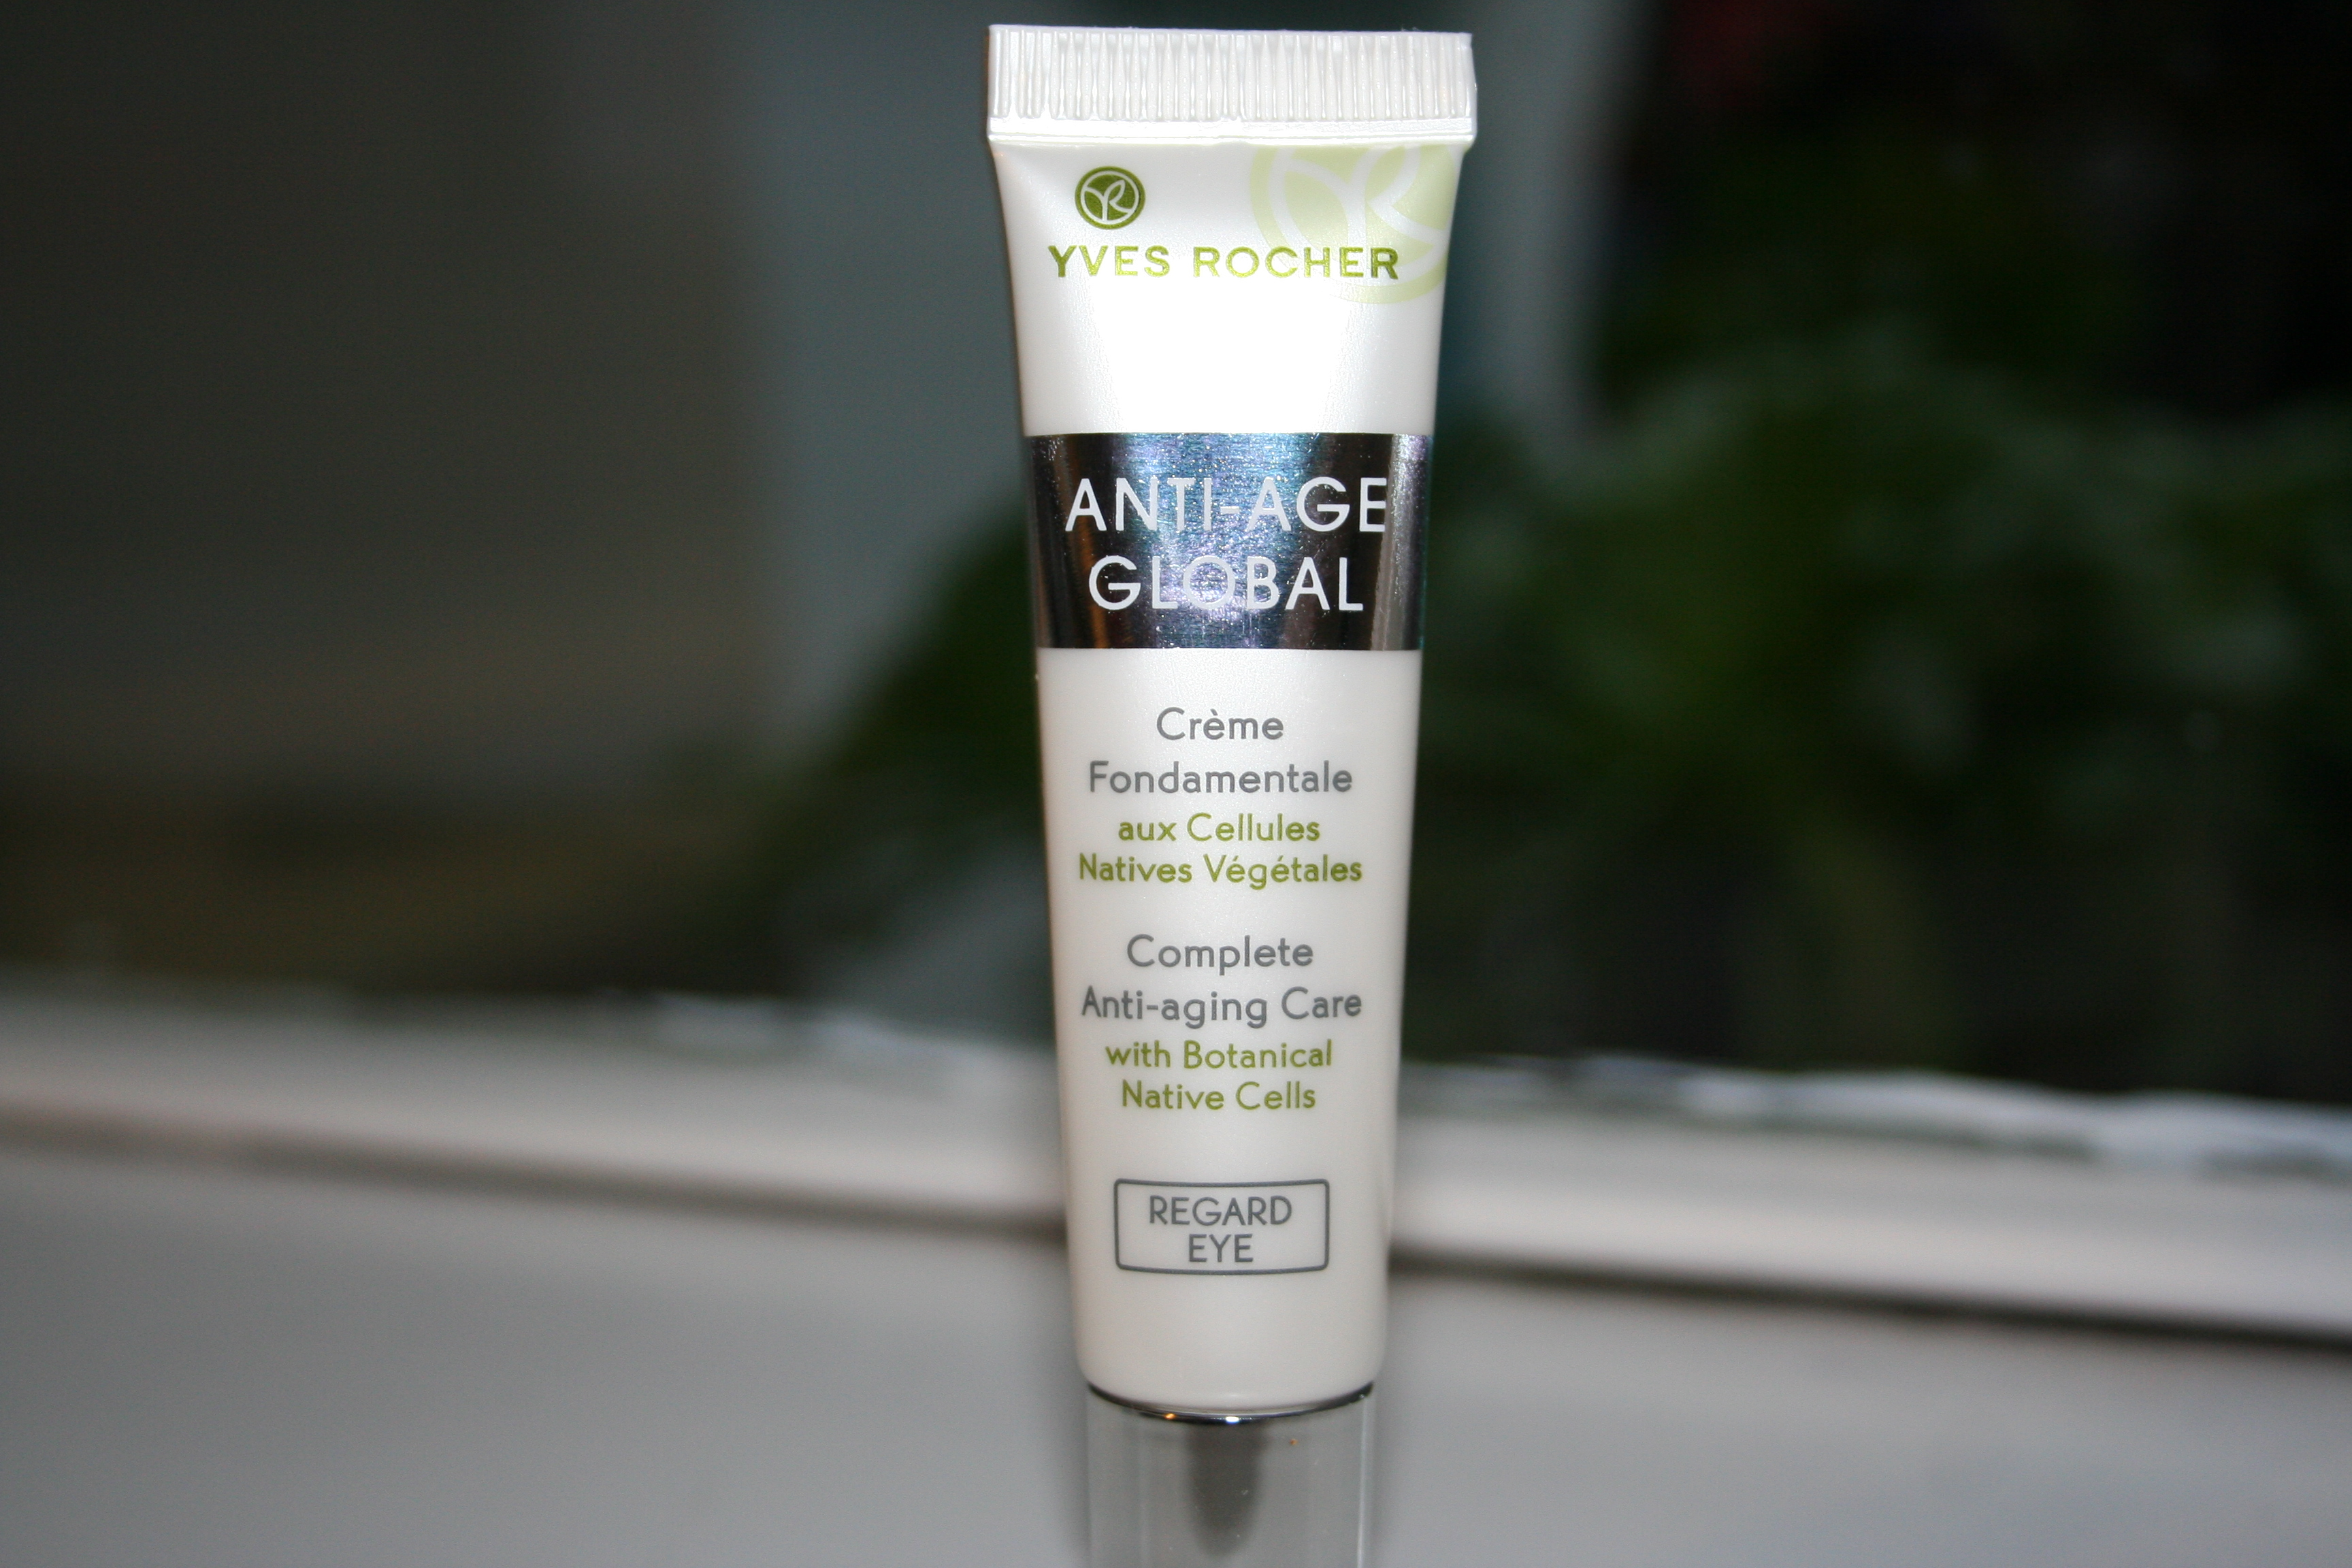 Yves Rocher Anti Age Global Crème Fondamentale Reviews Furrow